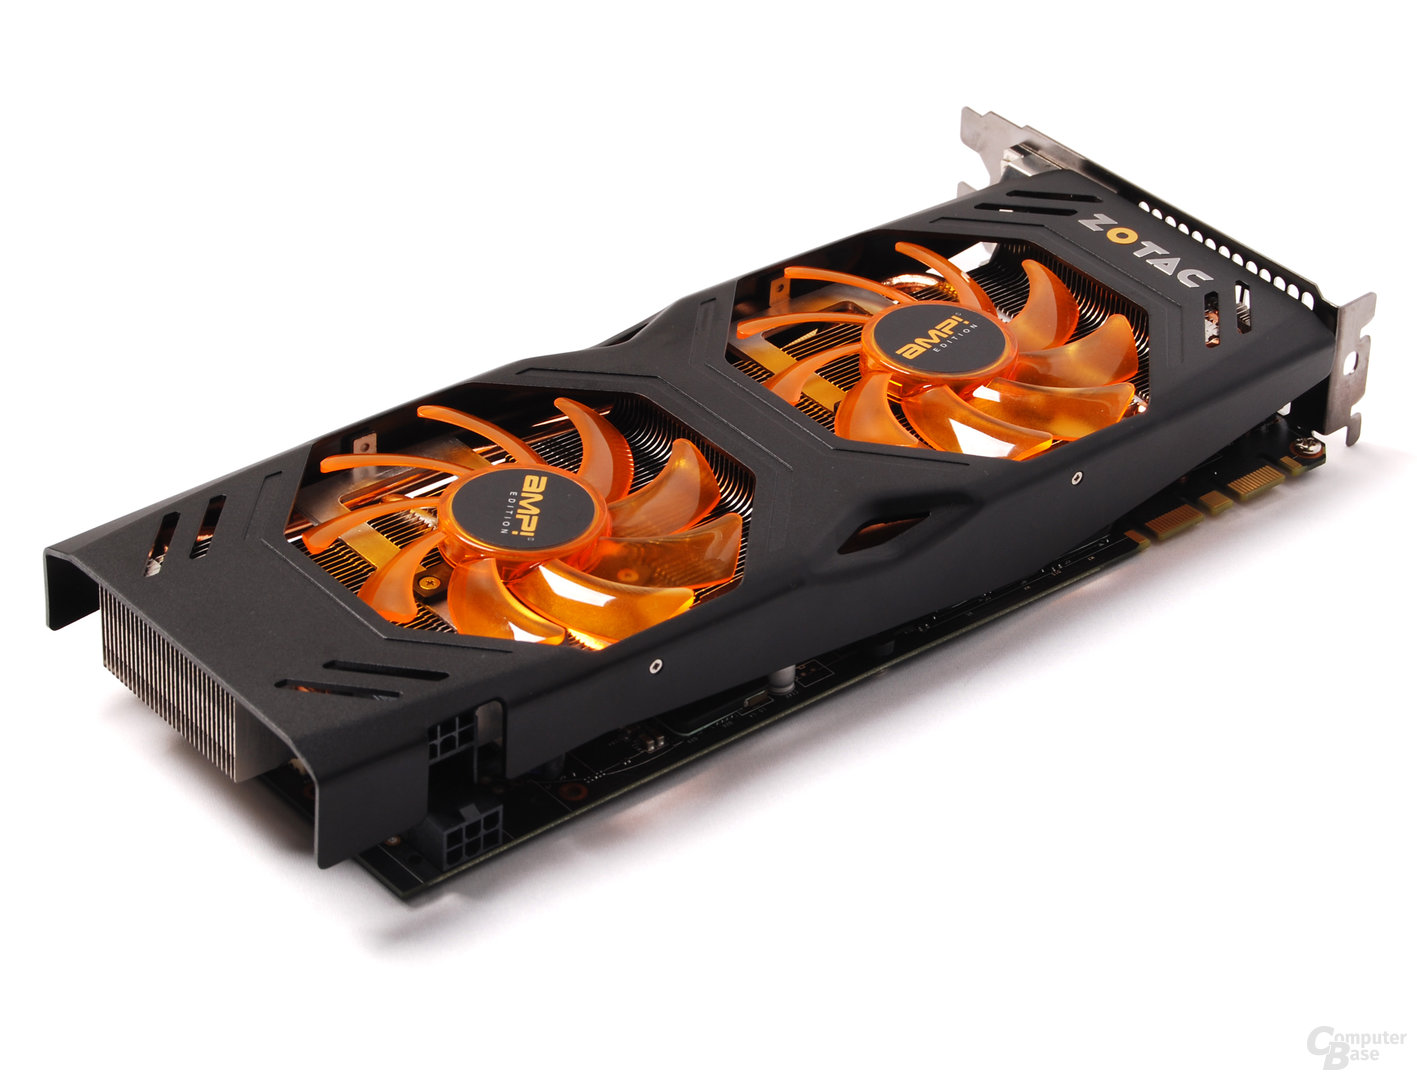 Zotac GeForce GTX 680 AMP! Dual Silencer